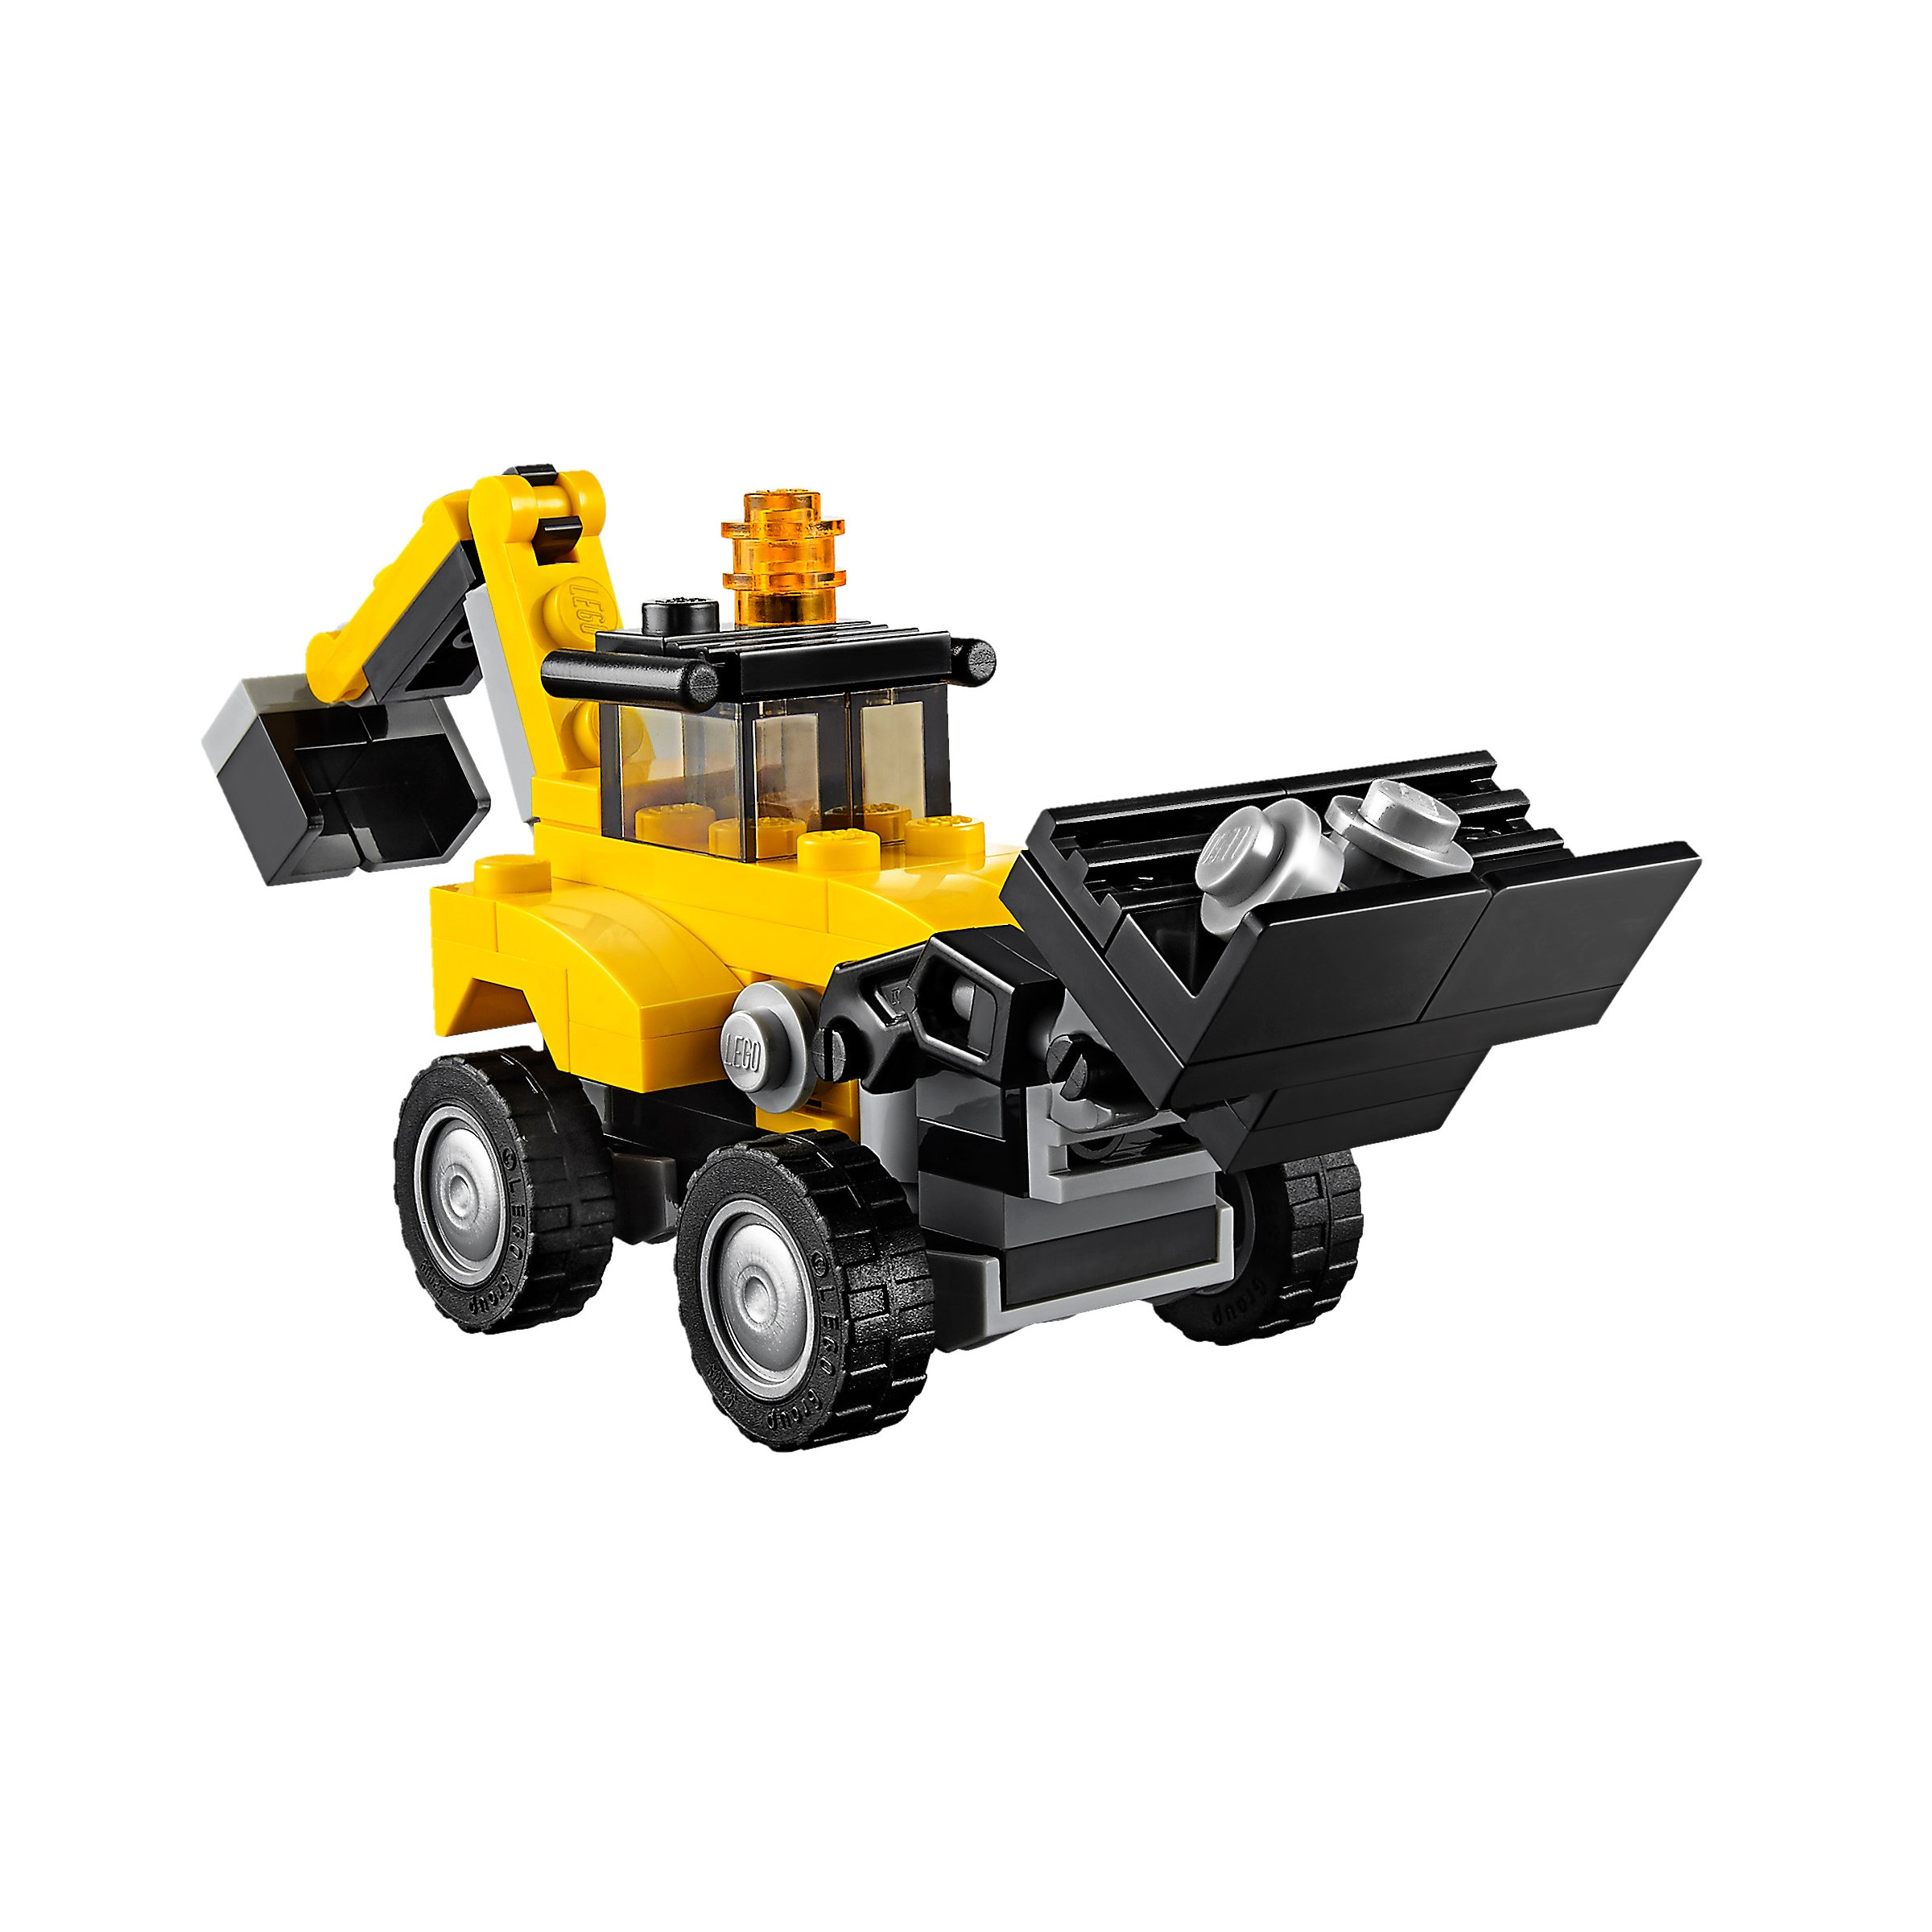 Lego 31041 Creator Construction Vehicles At Hobby Warehouse